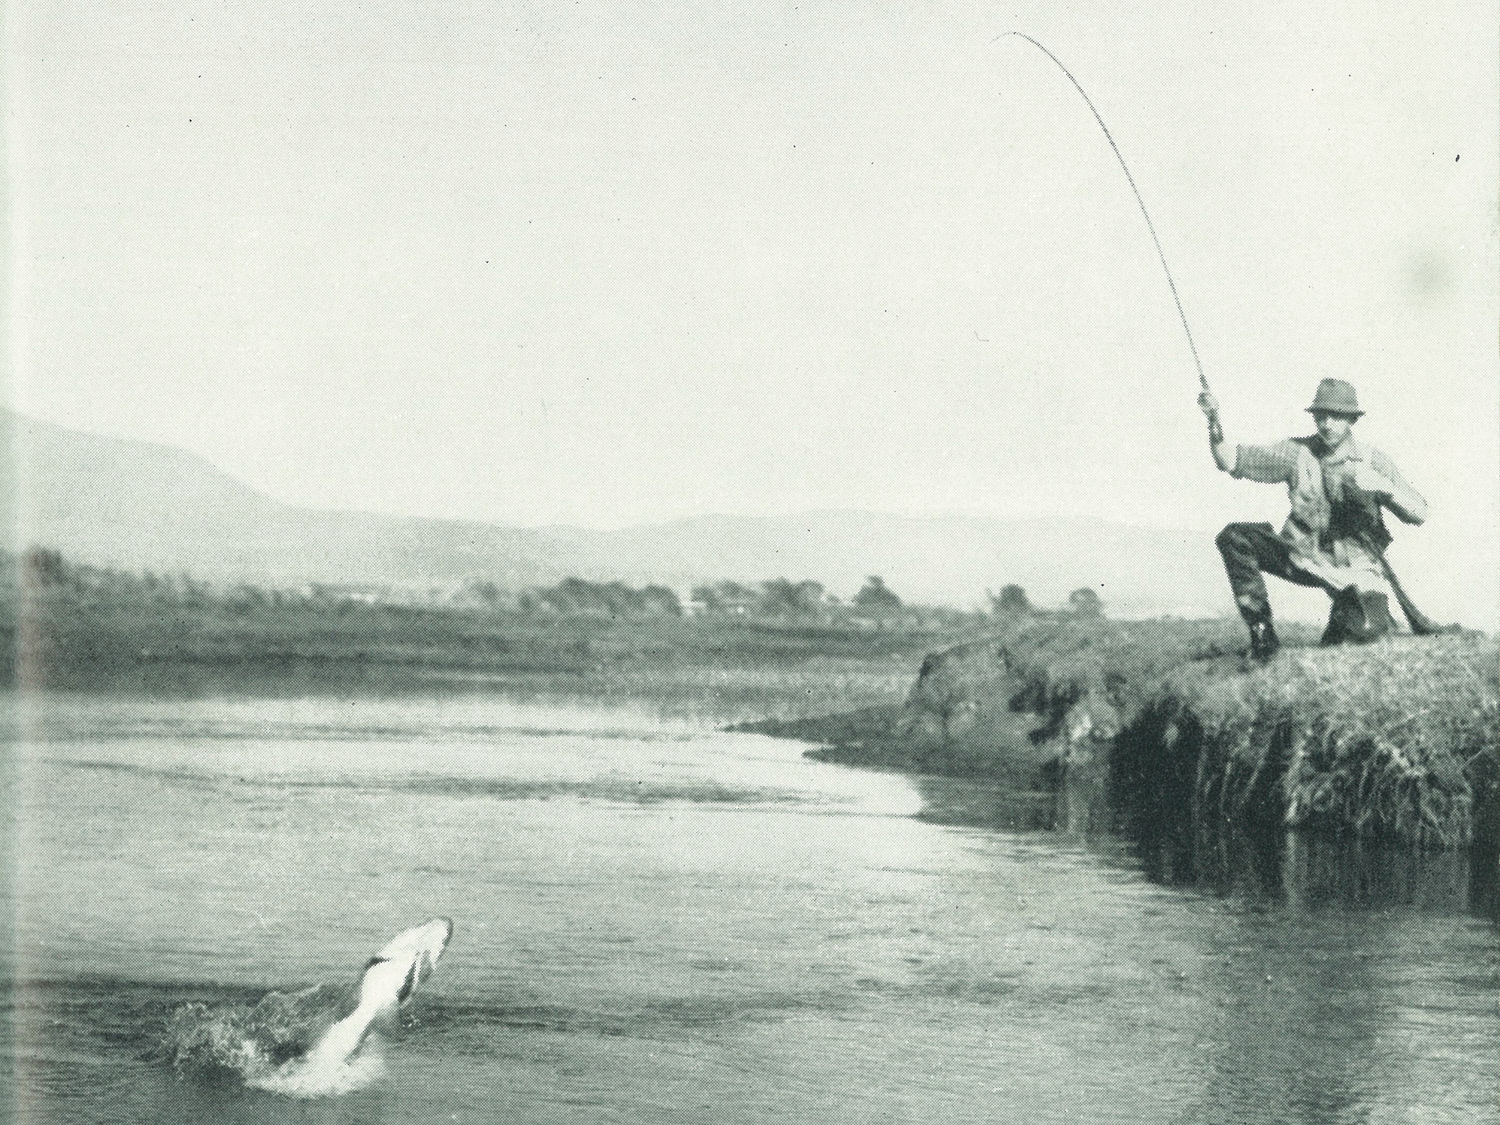 David Scholes on the lower Macquarie River, Tasmania. From Fly-fisher in Tasmania plate 12, page 83.